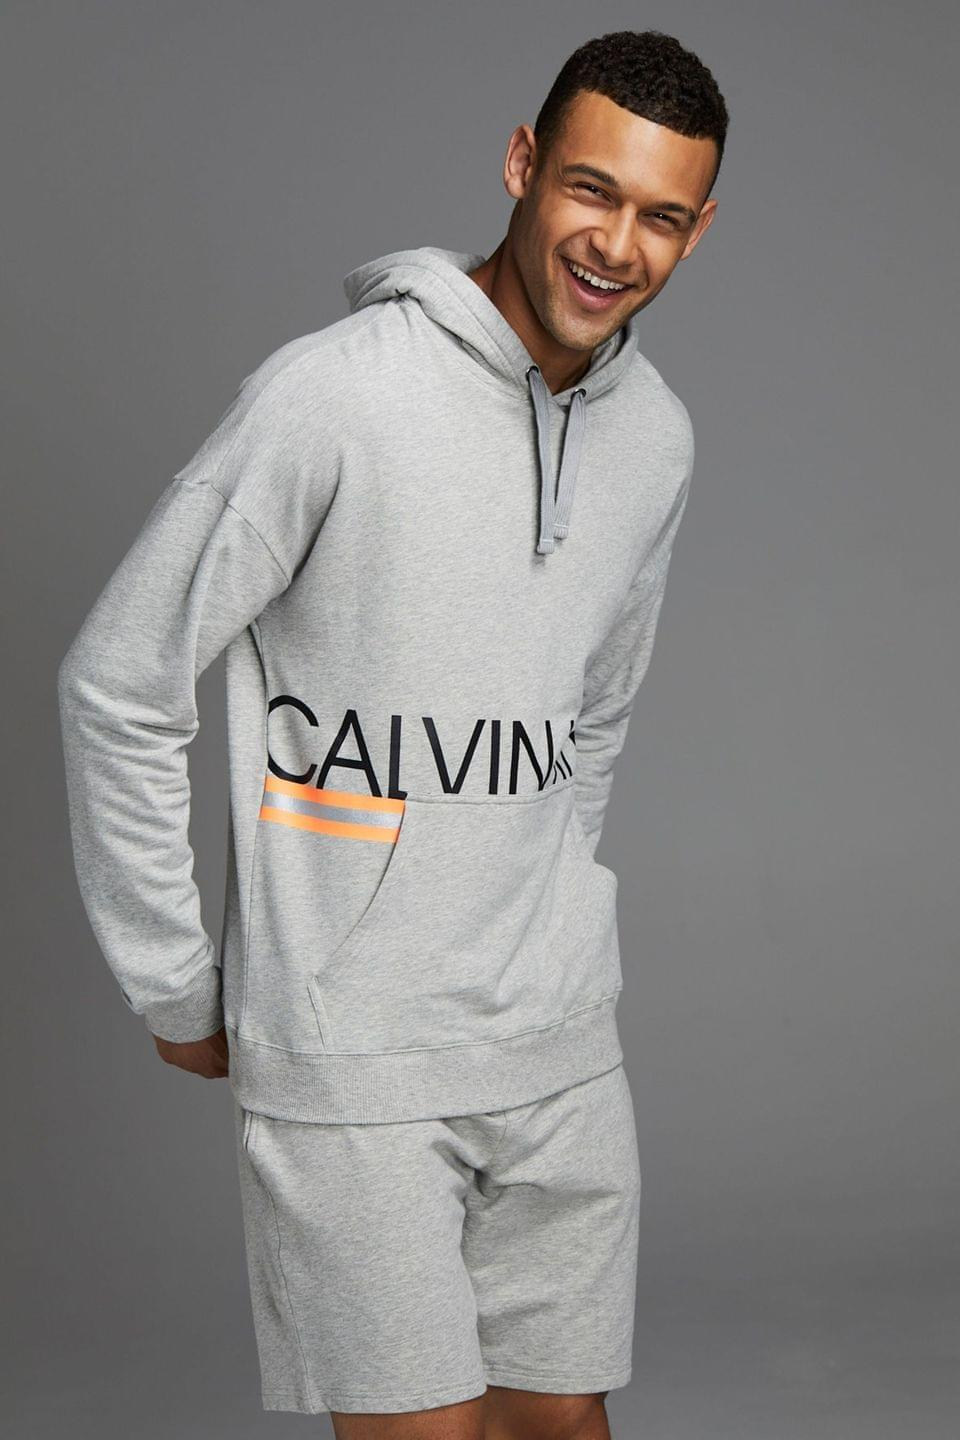 Men's Calvin Klein Grey Hazard Loungewear Hoody